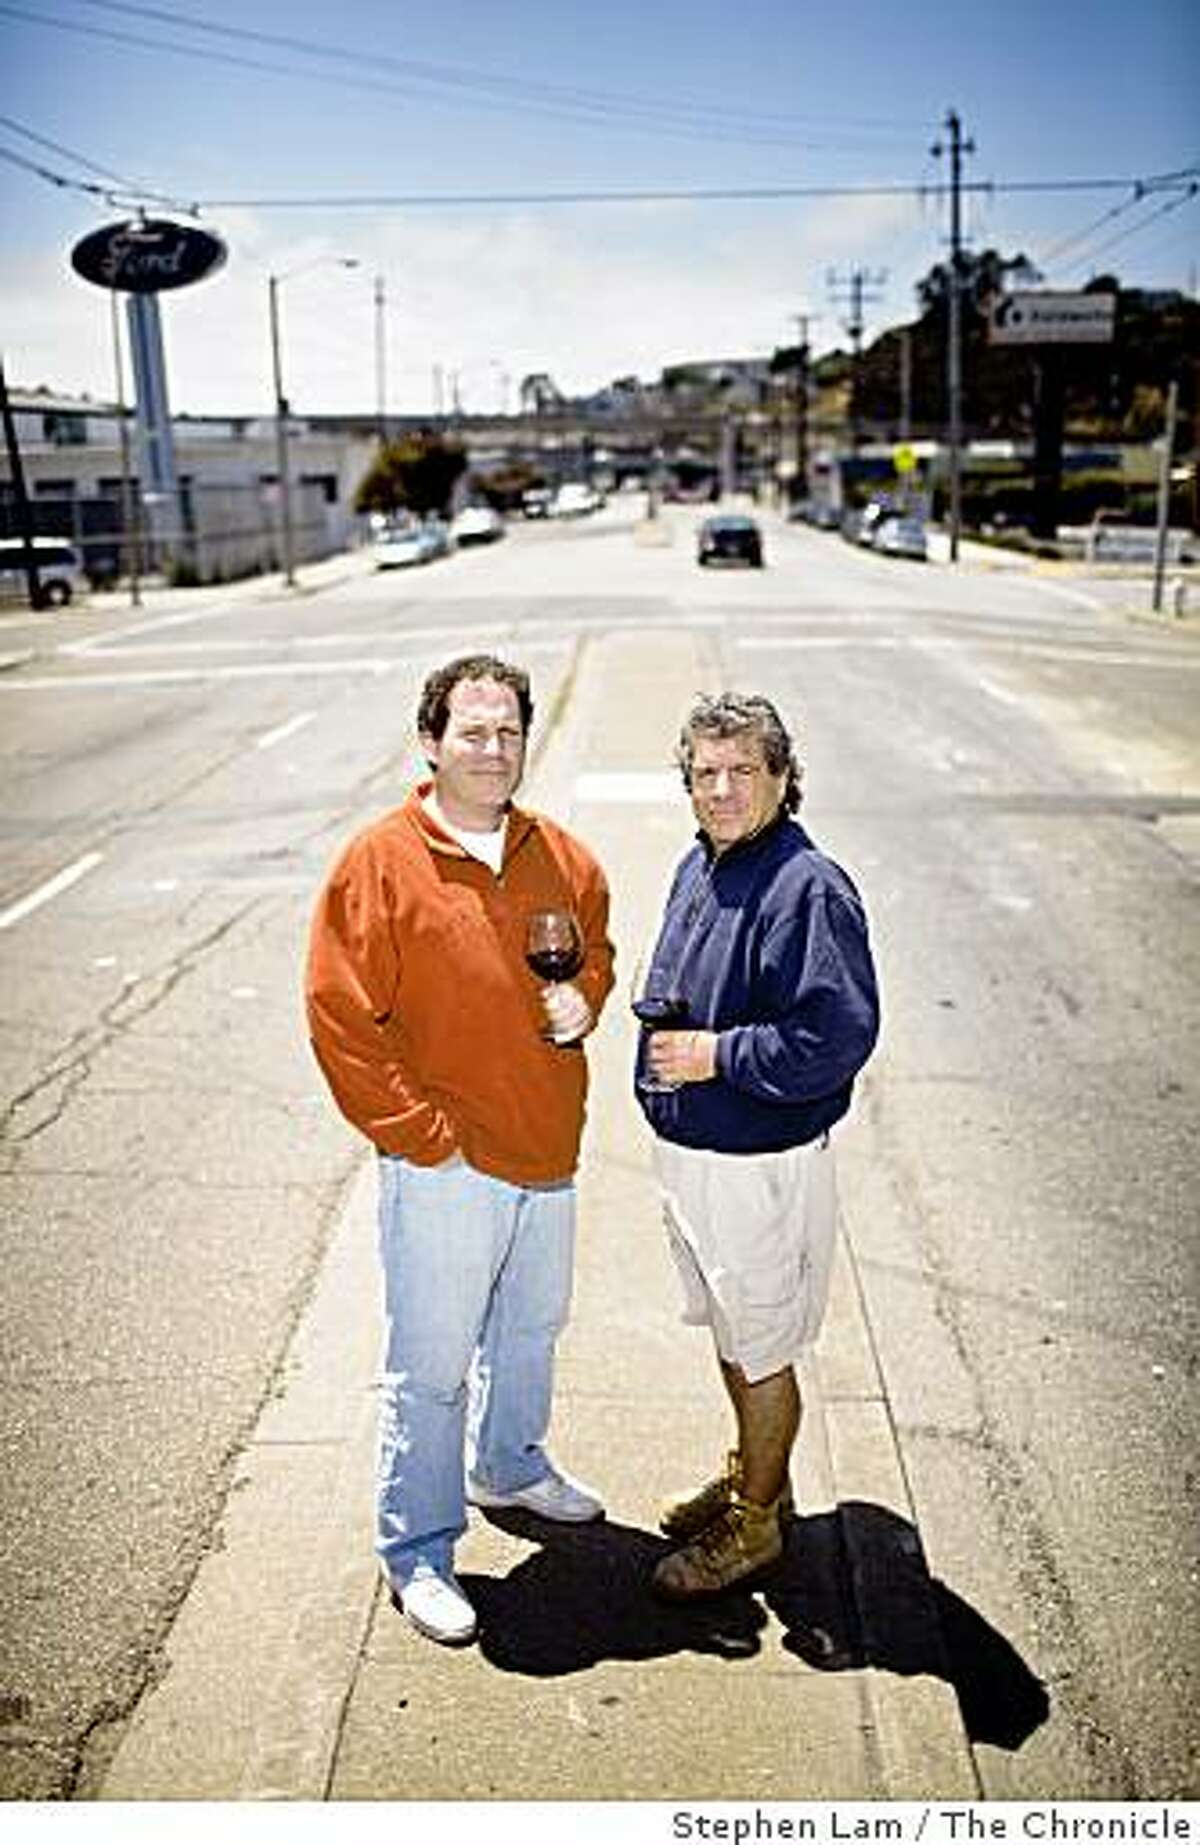 Winemaker Ed Kurtzman, left, of August West Wines and Gary Franscioni of ROAR Wines stands for a portrait outside their winemaking facility in San Francisco's Bayview District Thursday, July 9, 2009.